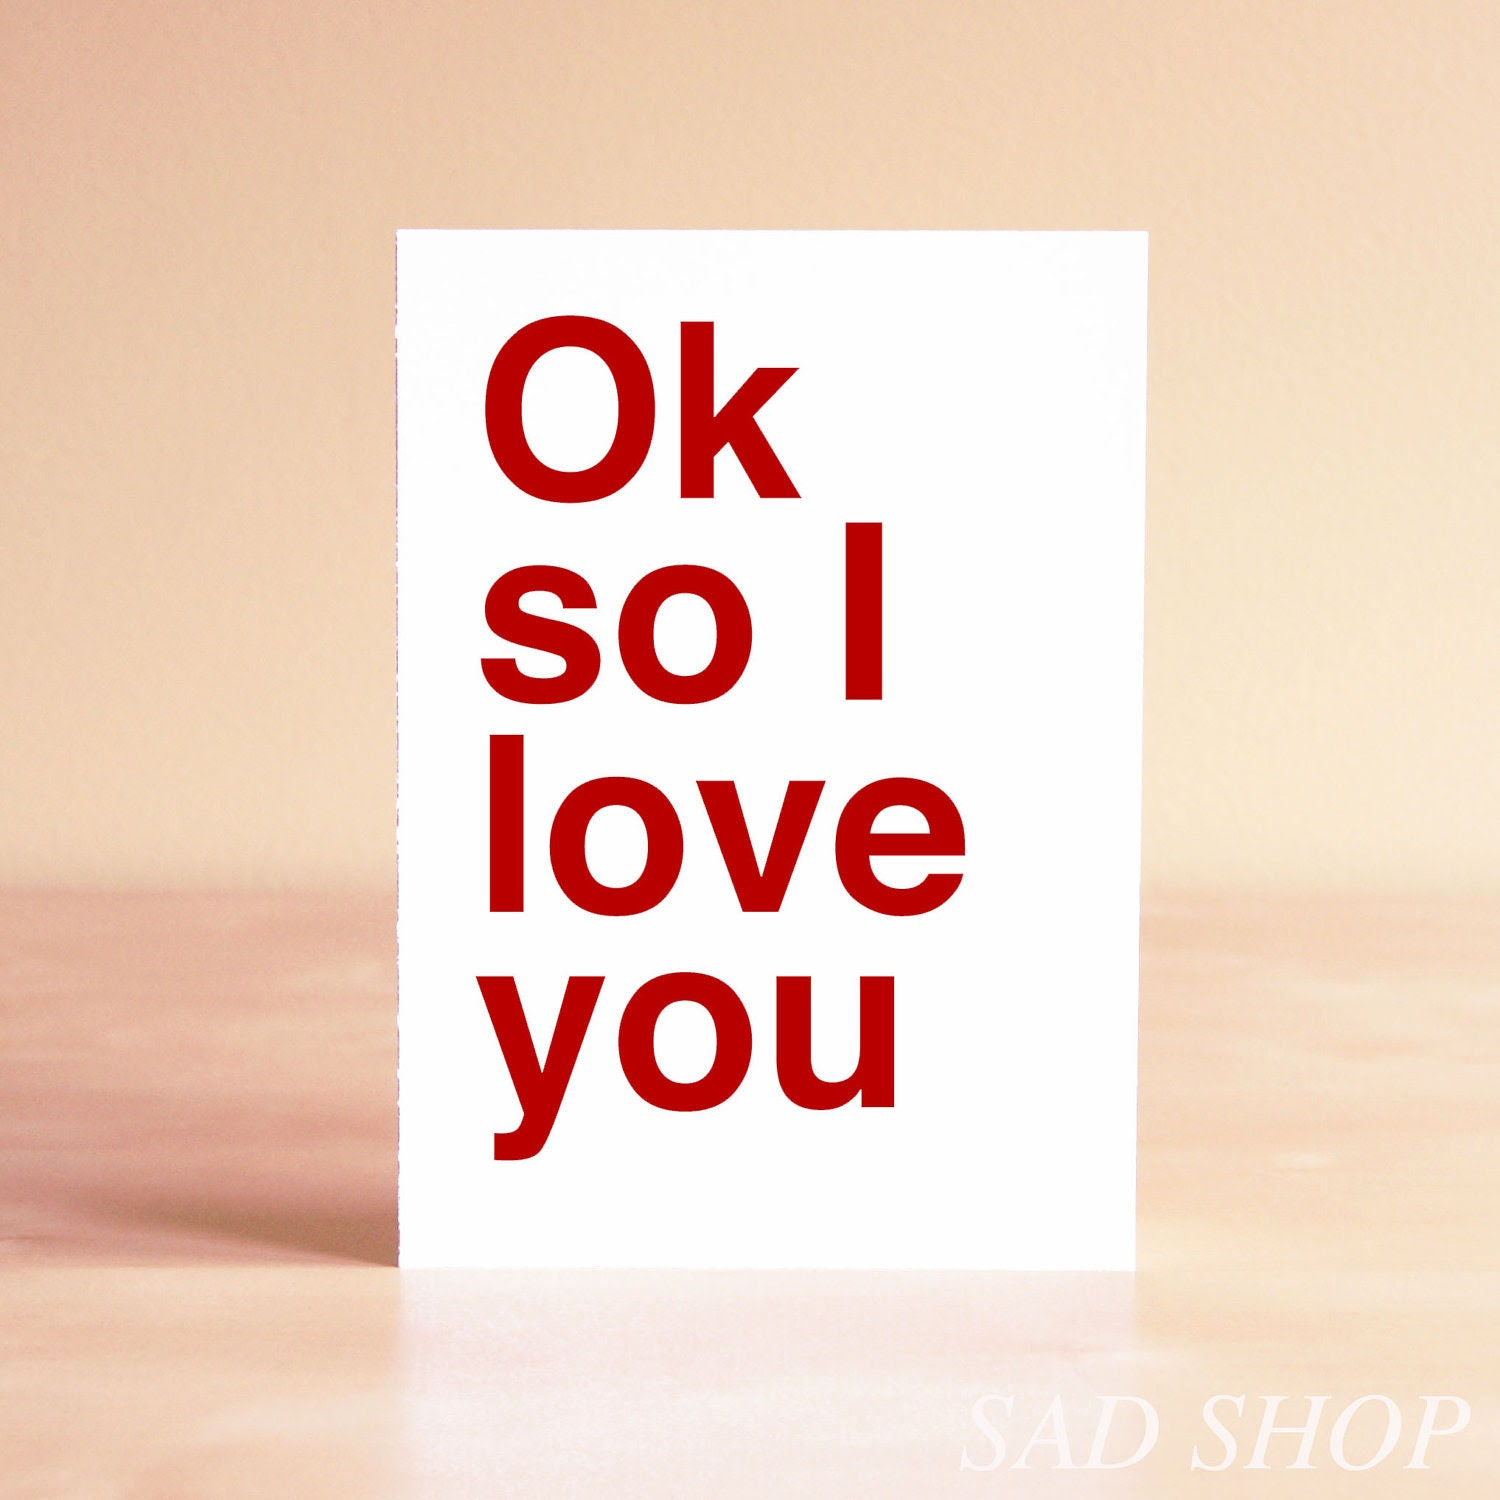 Funny Valentine Card - Valentine's Day Card - Funny Anniversary Card - Romantic Card - Thinking of You Card - Ok so I love you